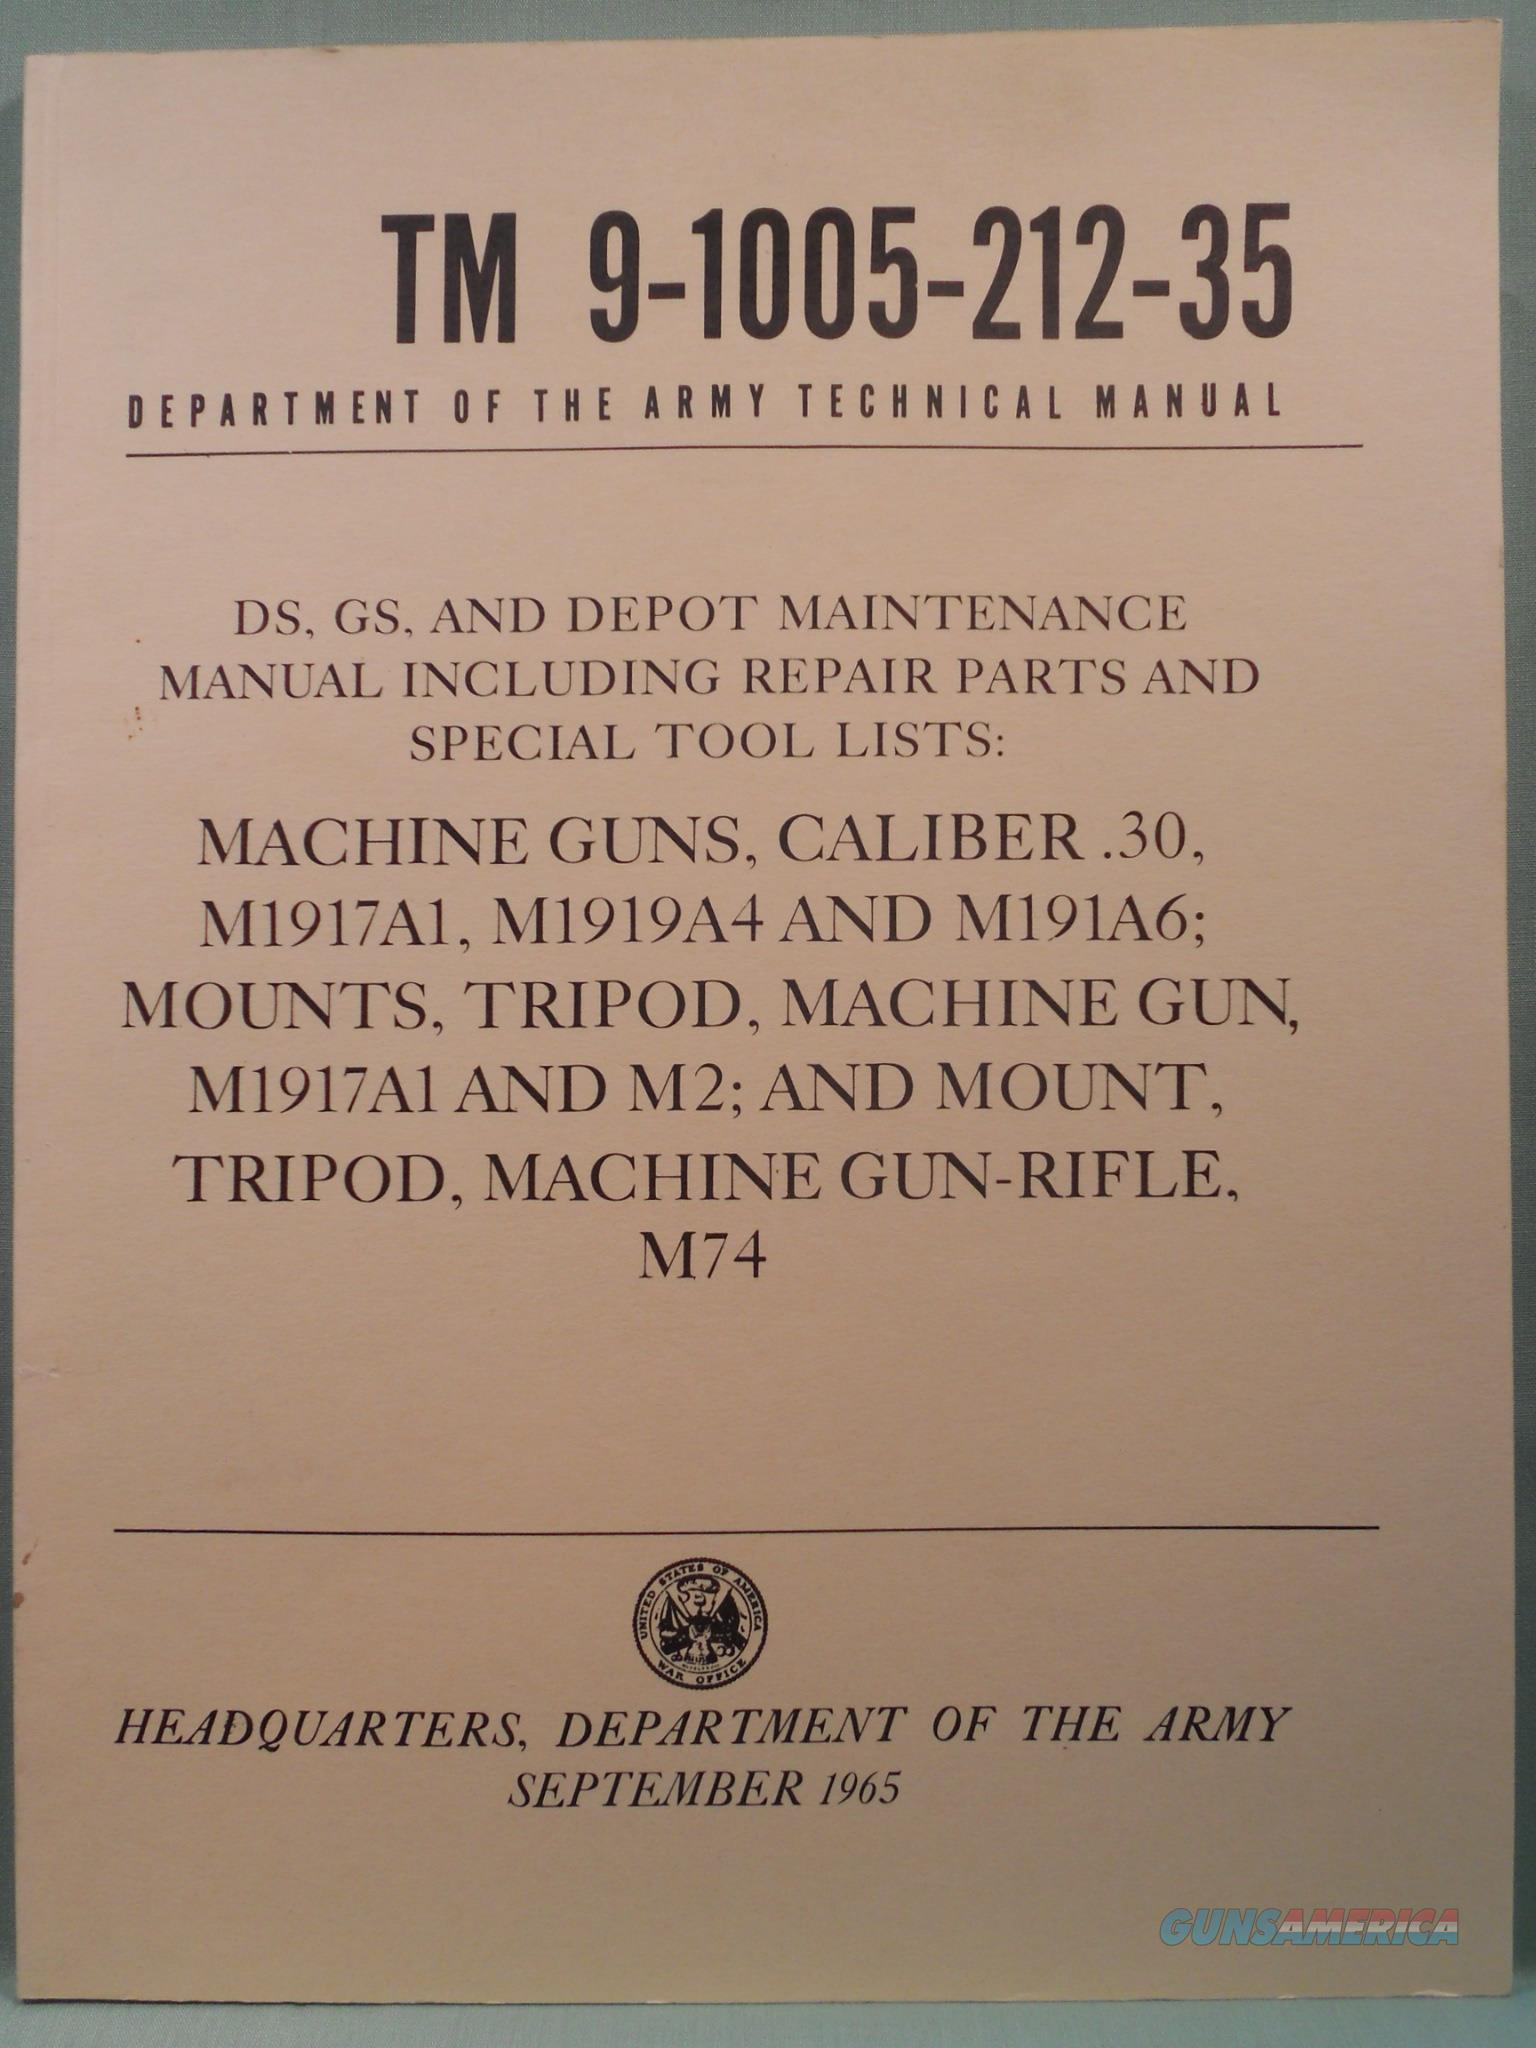 1965 TM9-1005-212-35 Caliber .30 Machine Gun Technical Manual Army   Non-Guns > Military > Books